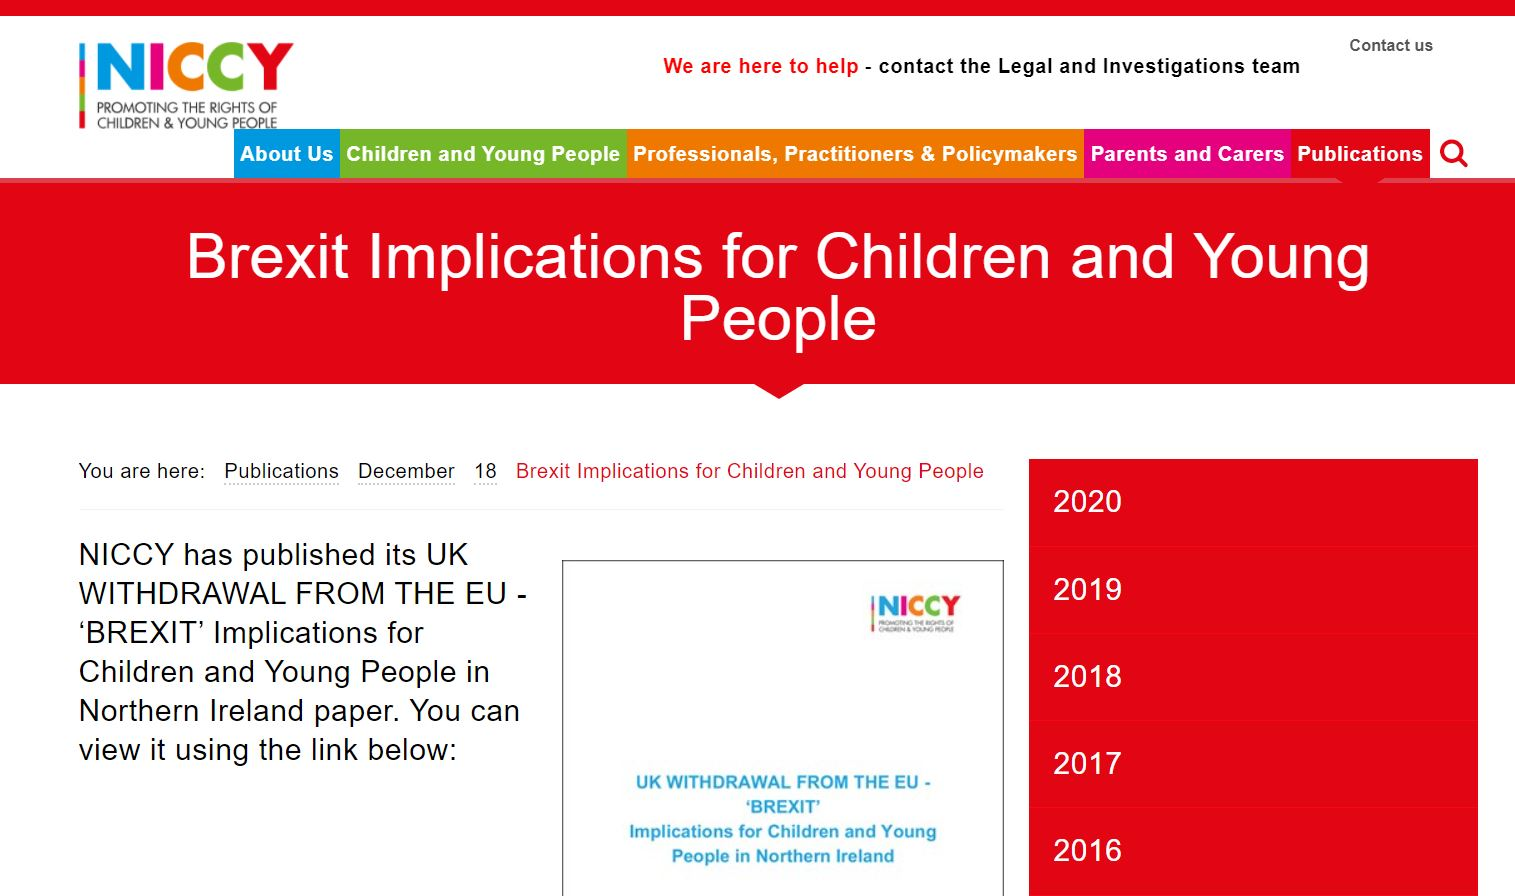 Image of Brexit Implications for Children and Young People